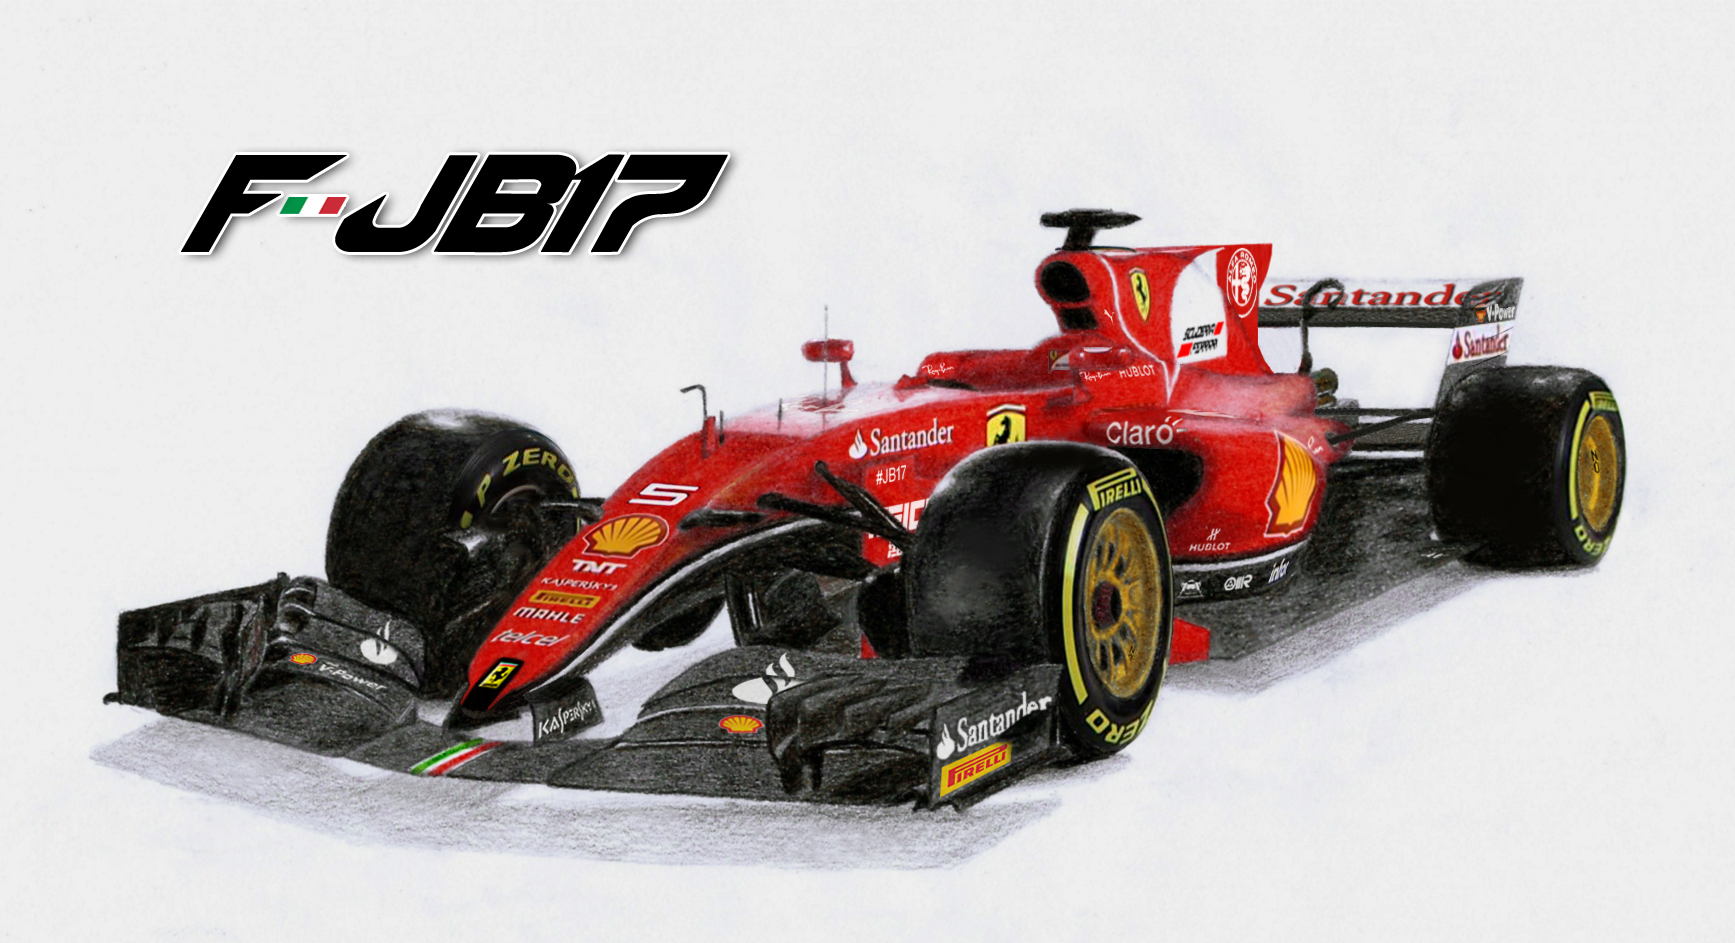 ferrari f1 2017 update engine cover and name tribute to jules bianchi pencil digital work. Black Bedroom Furniture Sets. Home Design Ideas